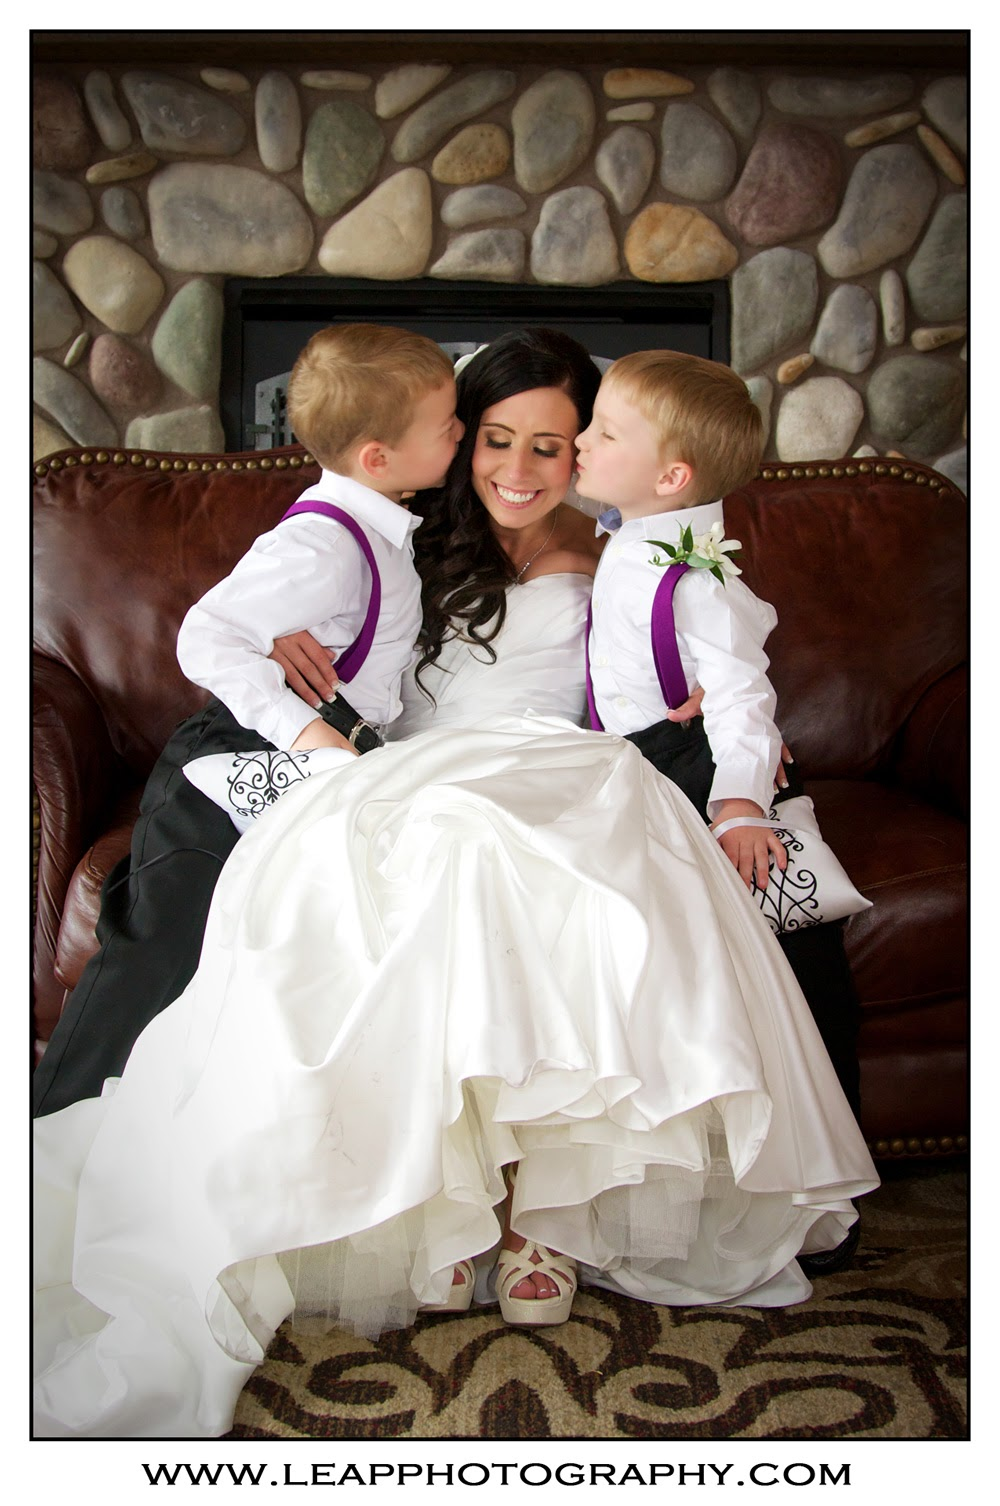 ring bearers kissing bride on the cheek